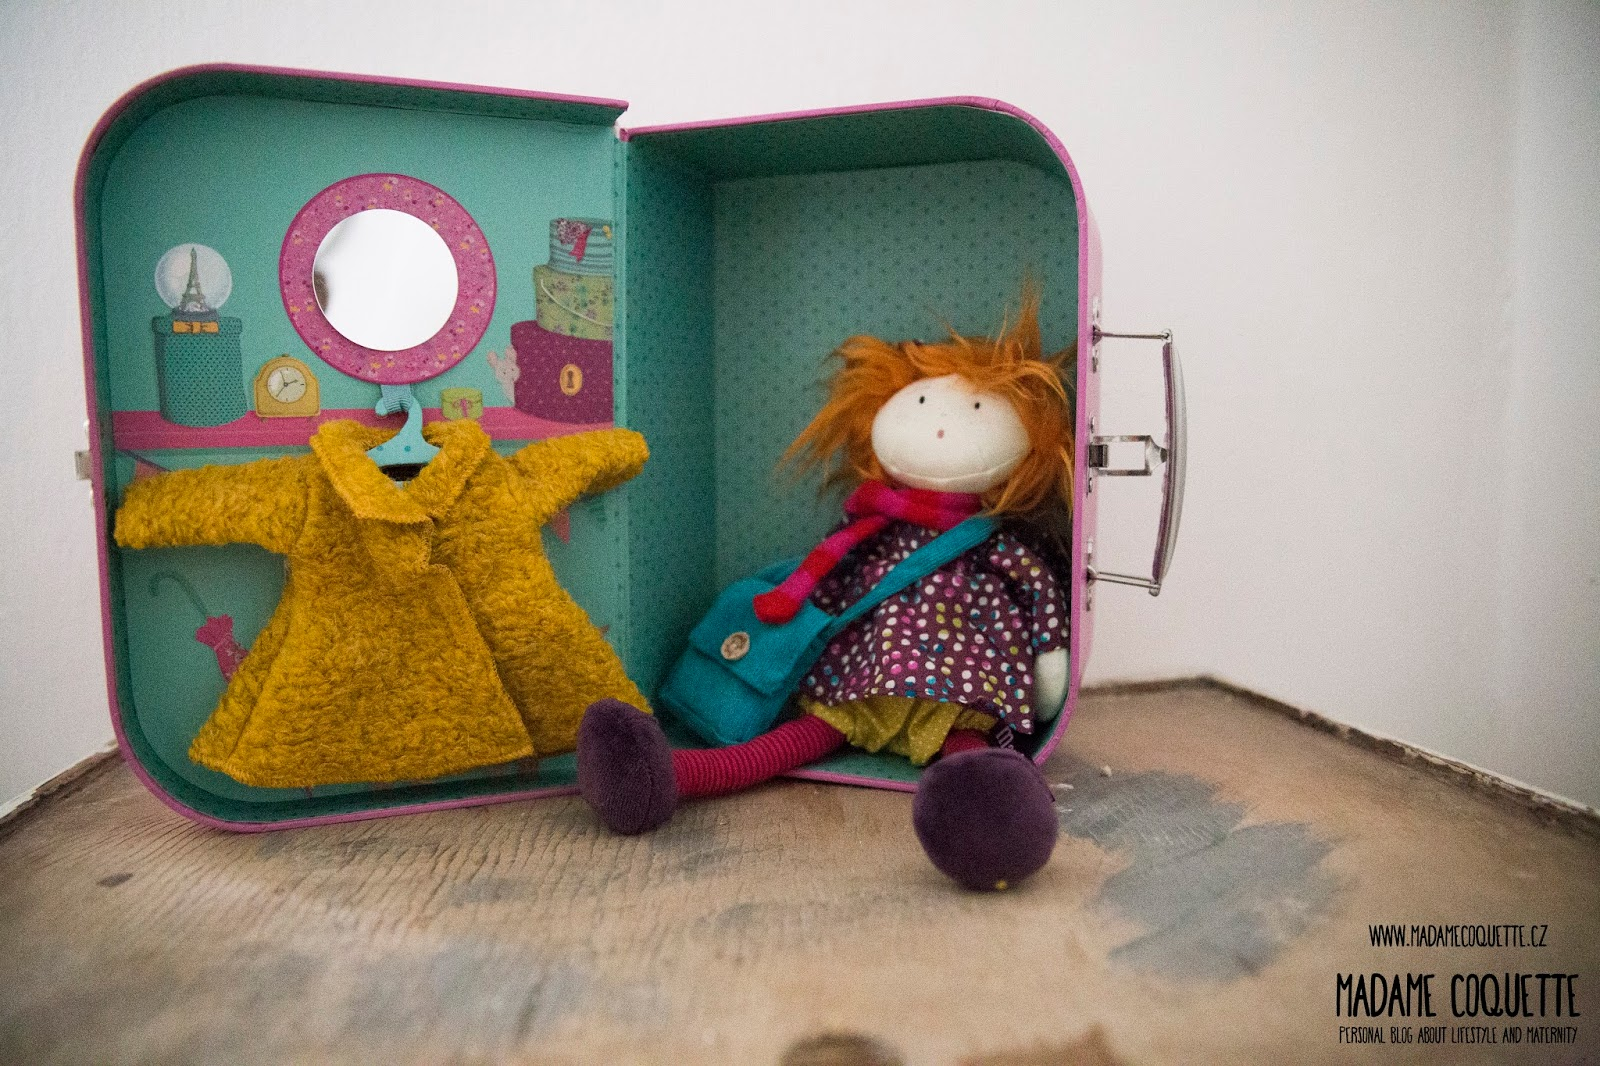 Madame coquette hra ky kter n s bav moulin roty - Kast moulin roty ...